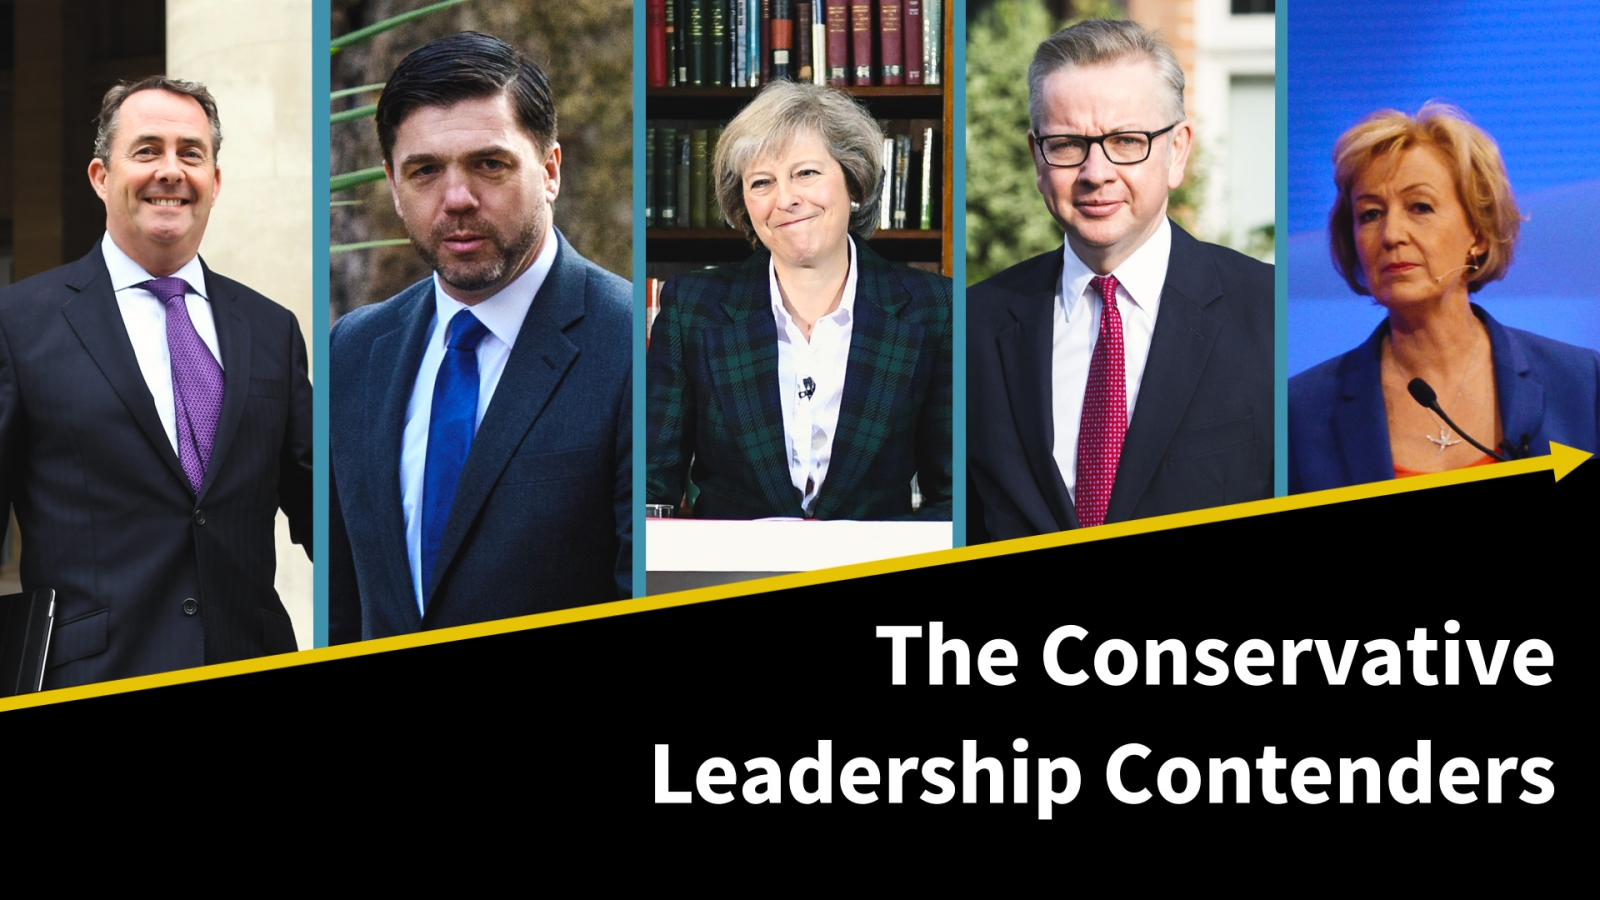 an analysis on approaches to political leadership of the conservative party Thatcherism describes the conviction, economic, social and political style of the british conservative party politician margaret thatcher, who was leader of her party from 1975 to 1990.